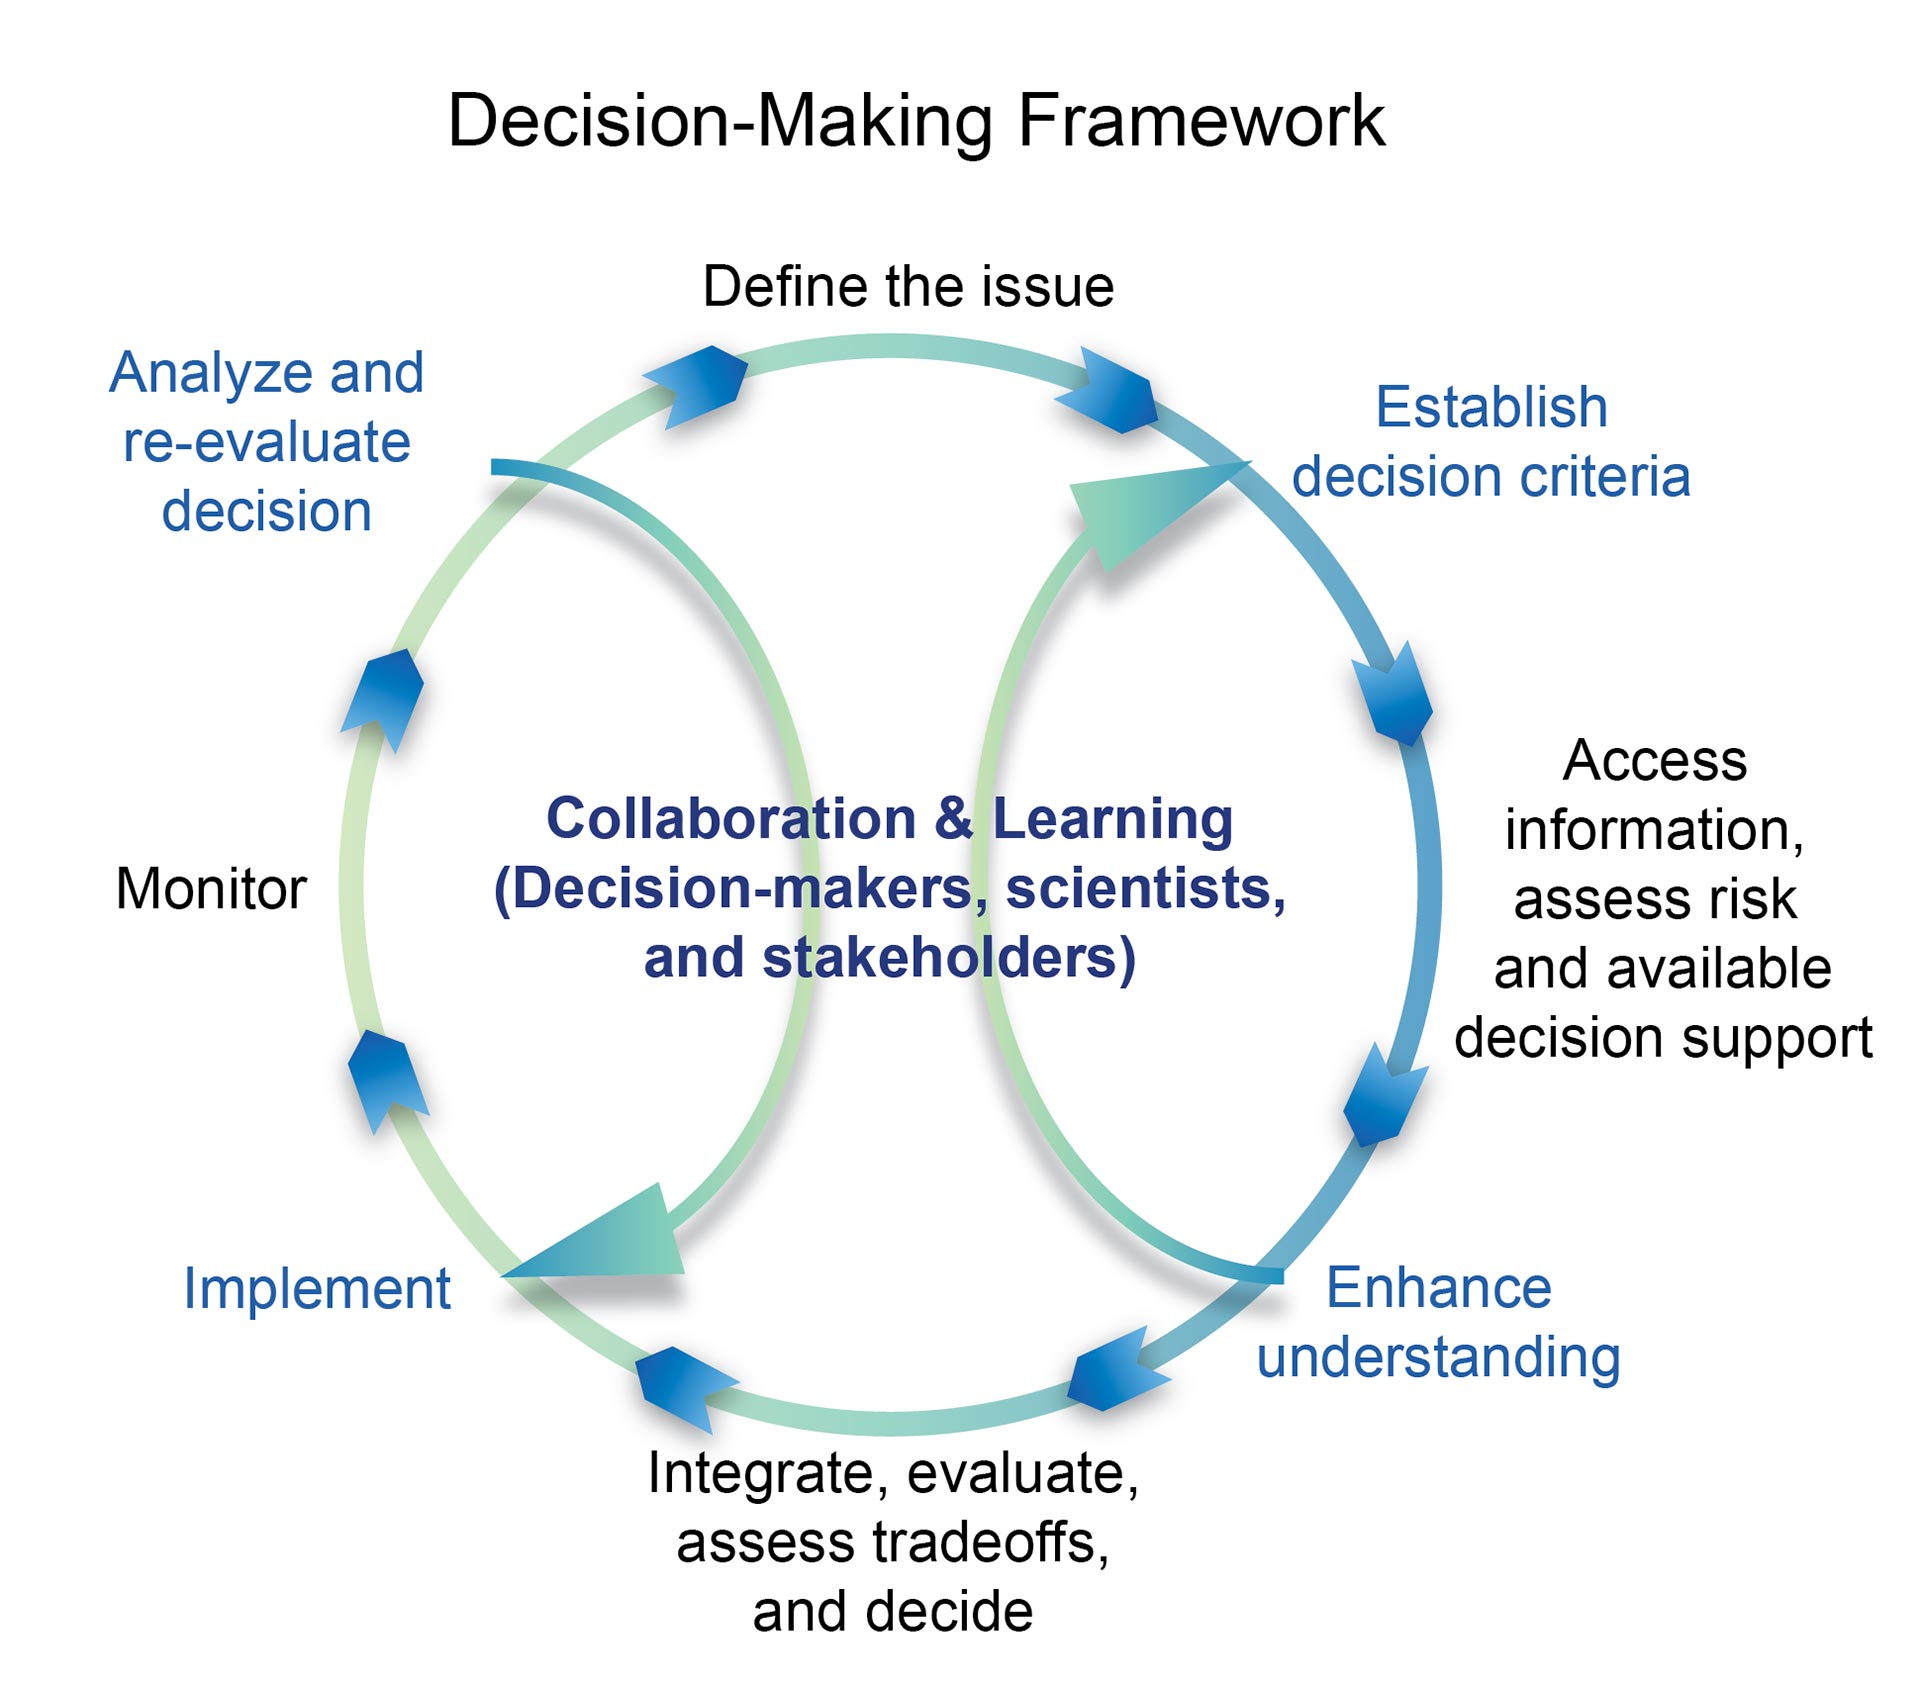 strategic decison models for public decision making